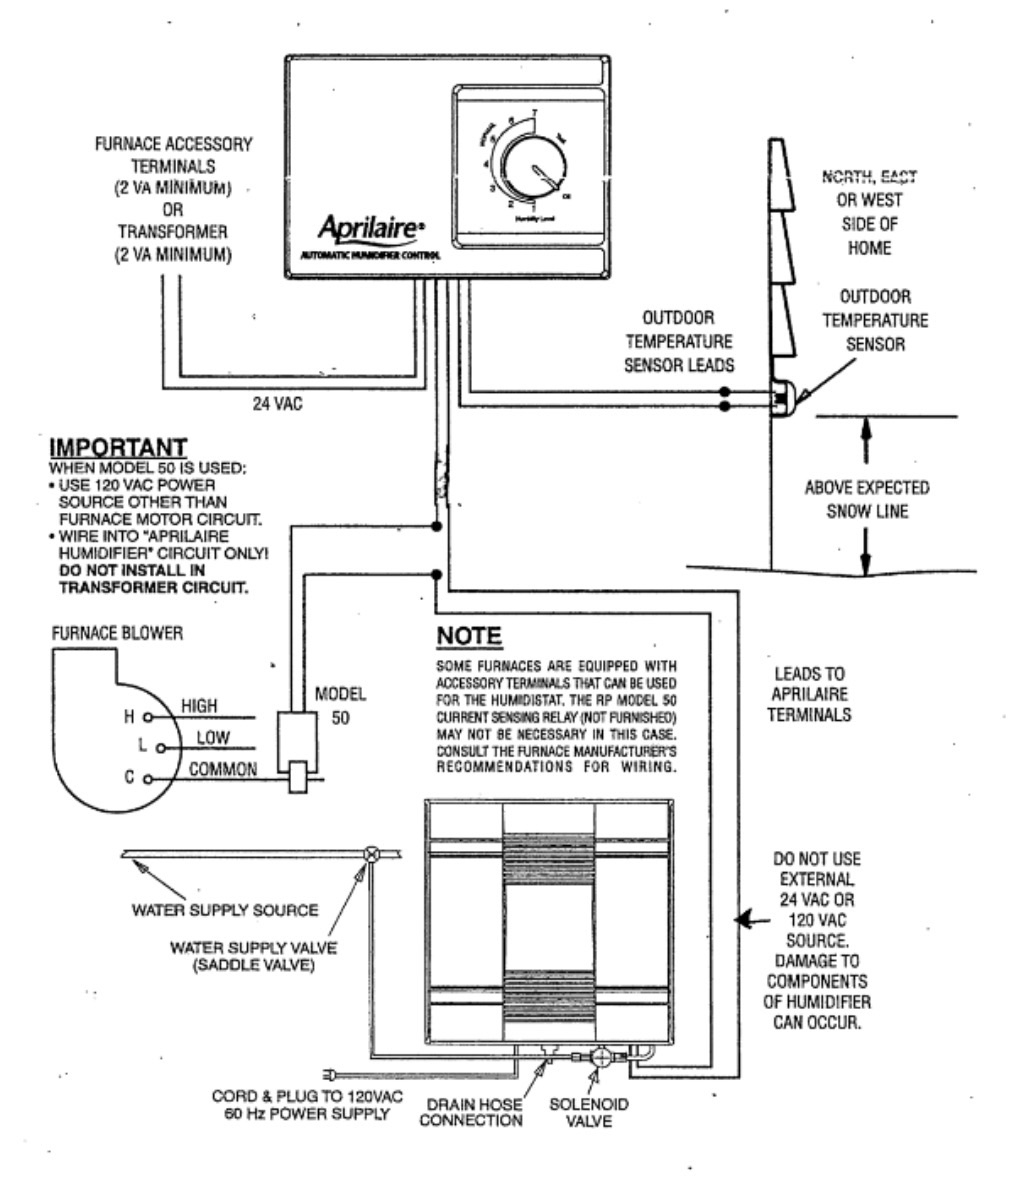 Wiring Diagram For Humidifier - Data Wiring Diagram Today - Nest Wiring Diagram Amanda